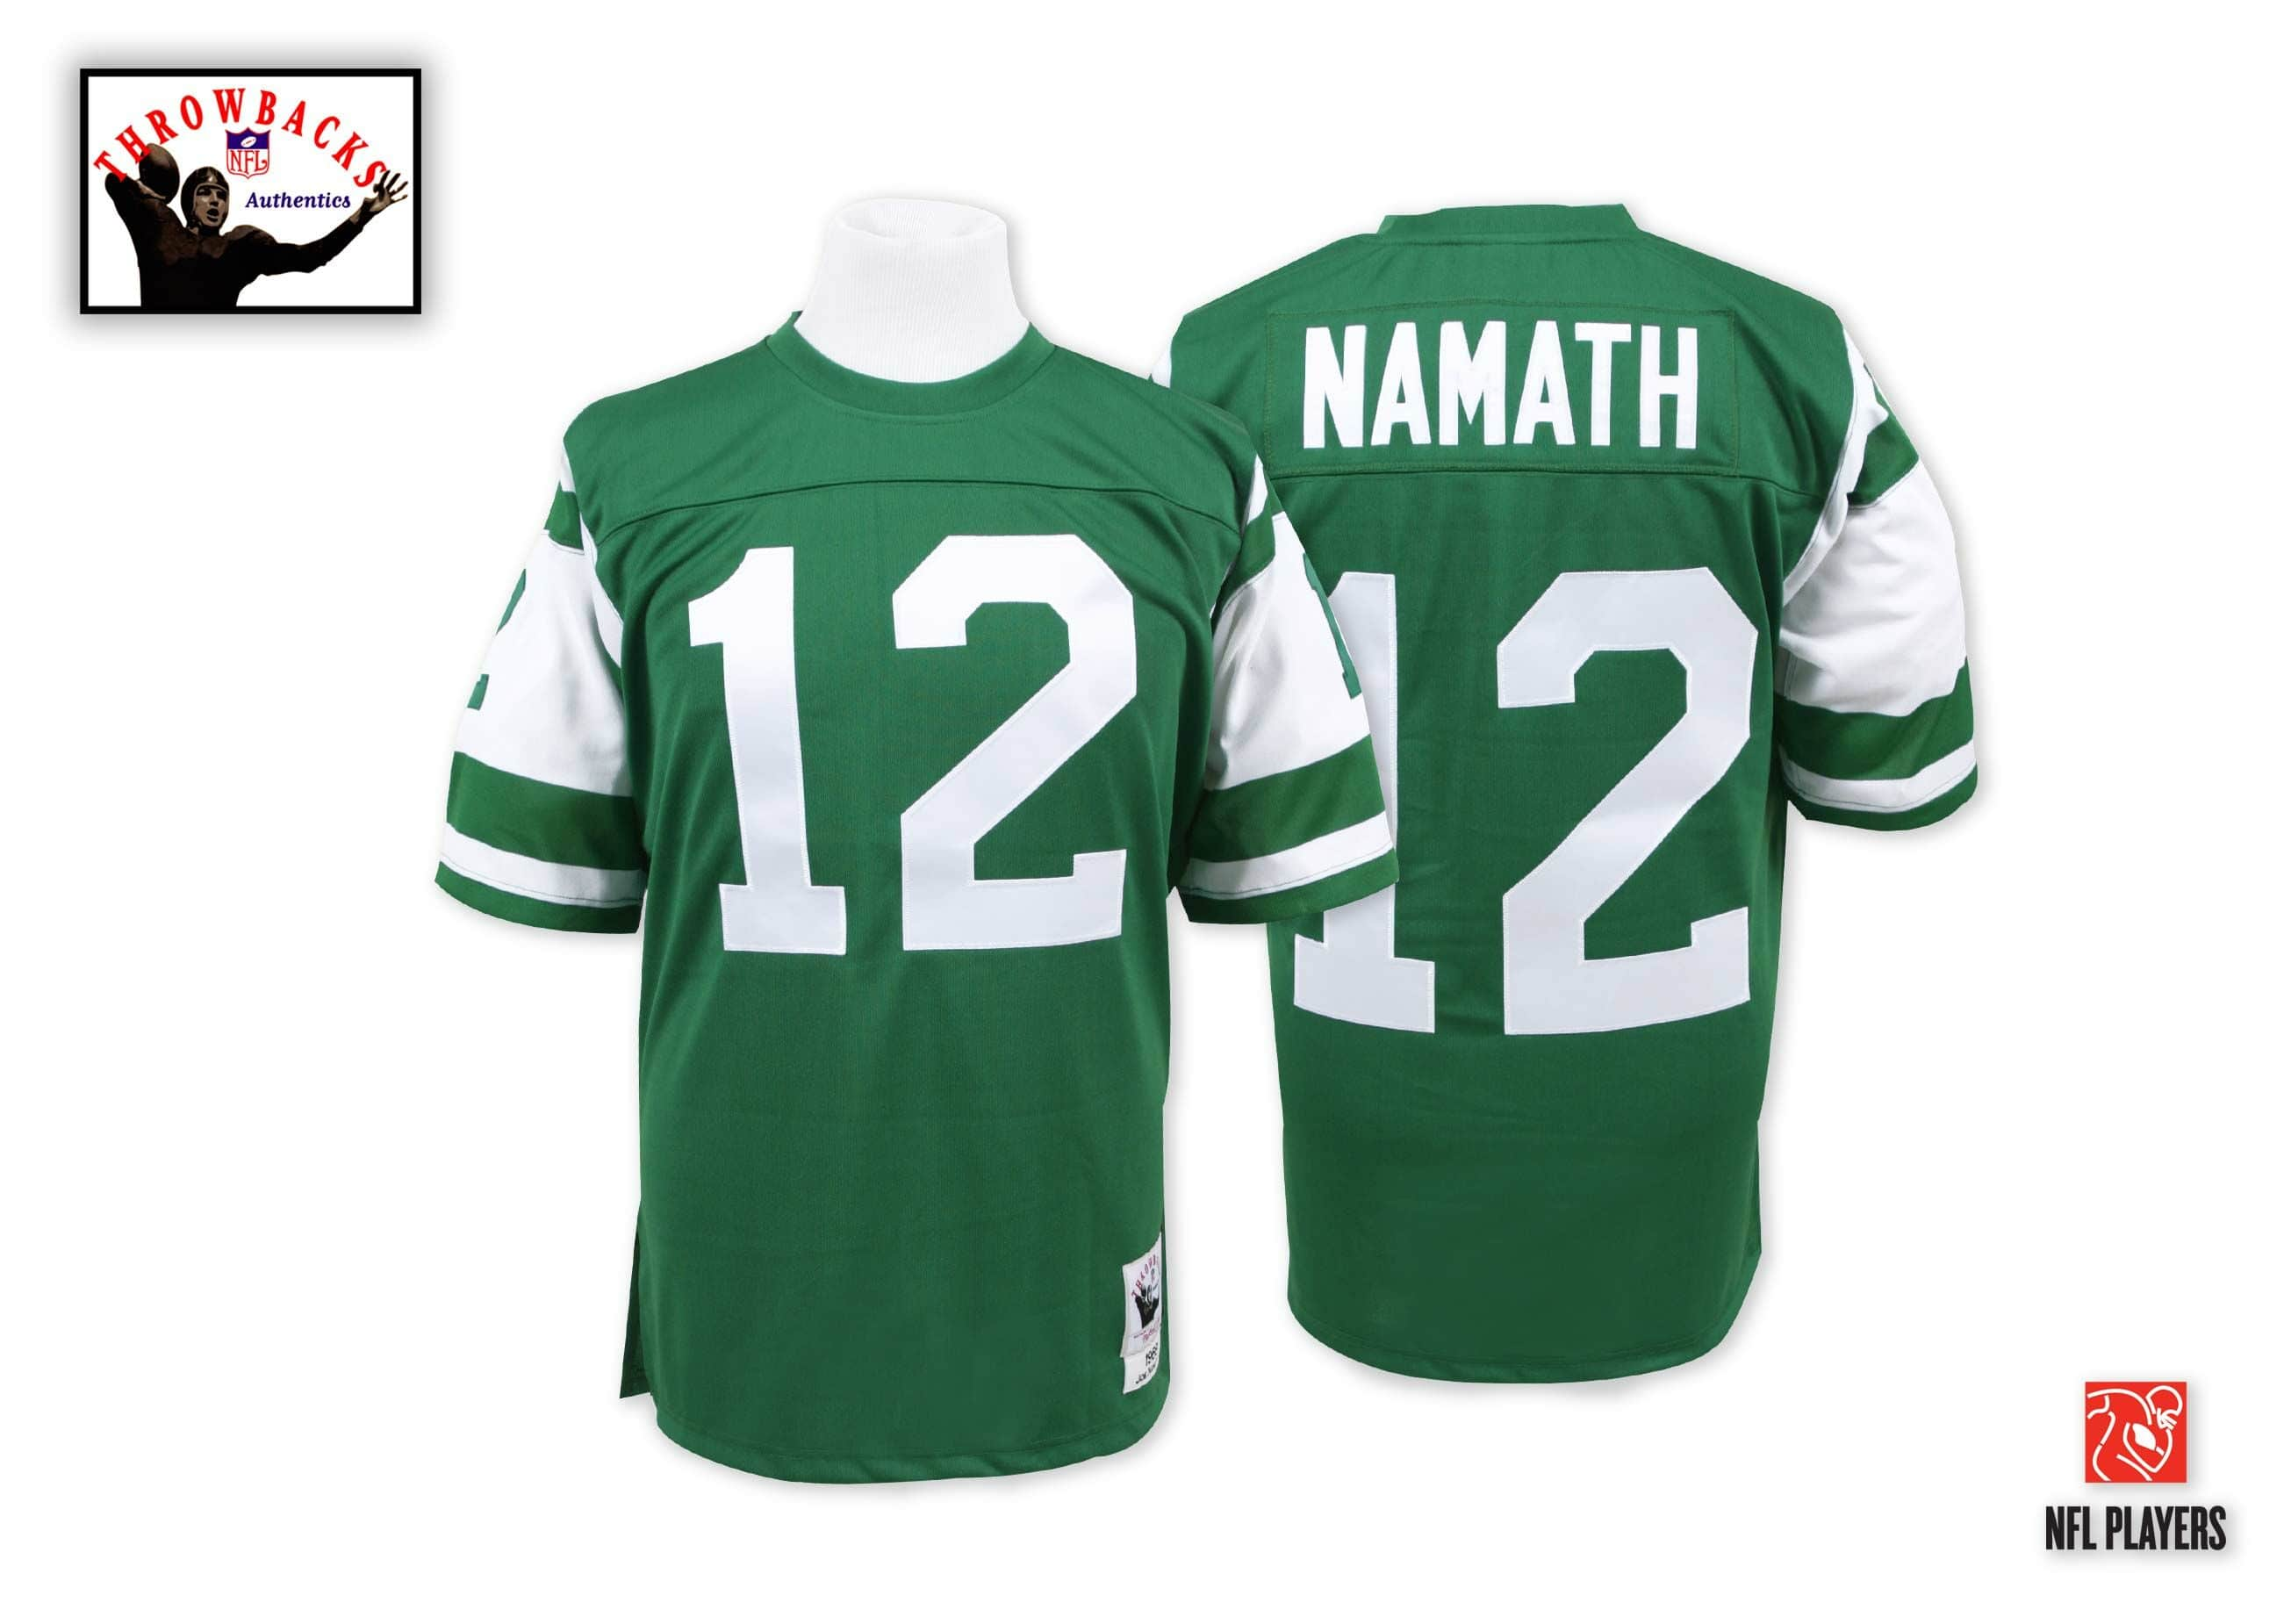 Joe Namath 1968 Authentic Jersey New York Jets